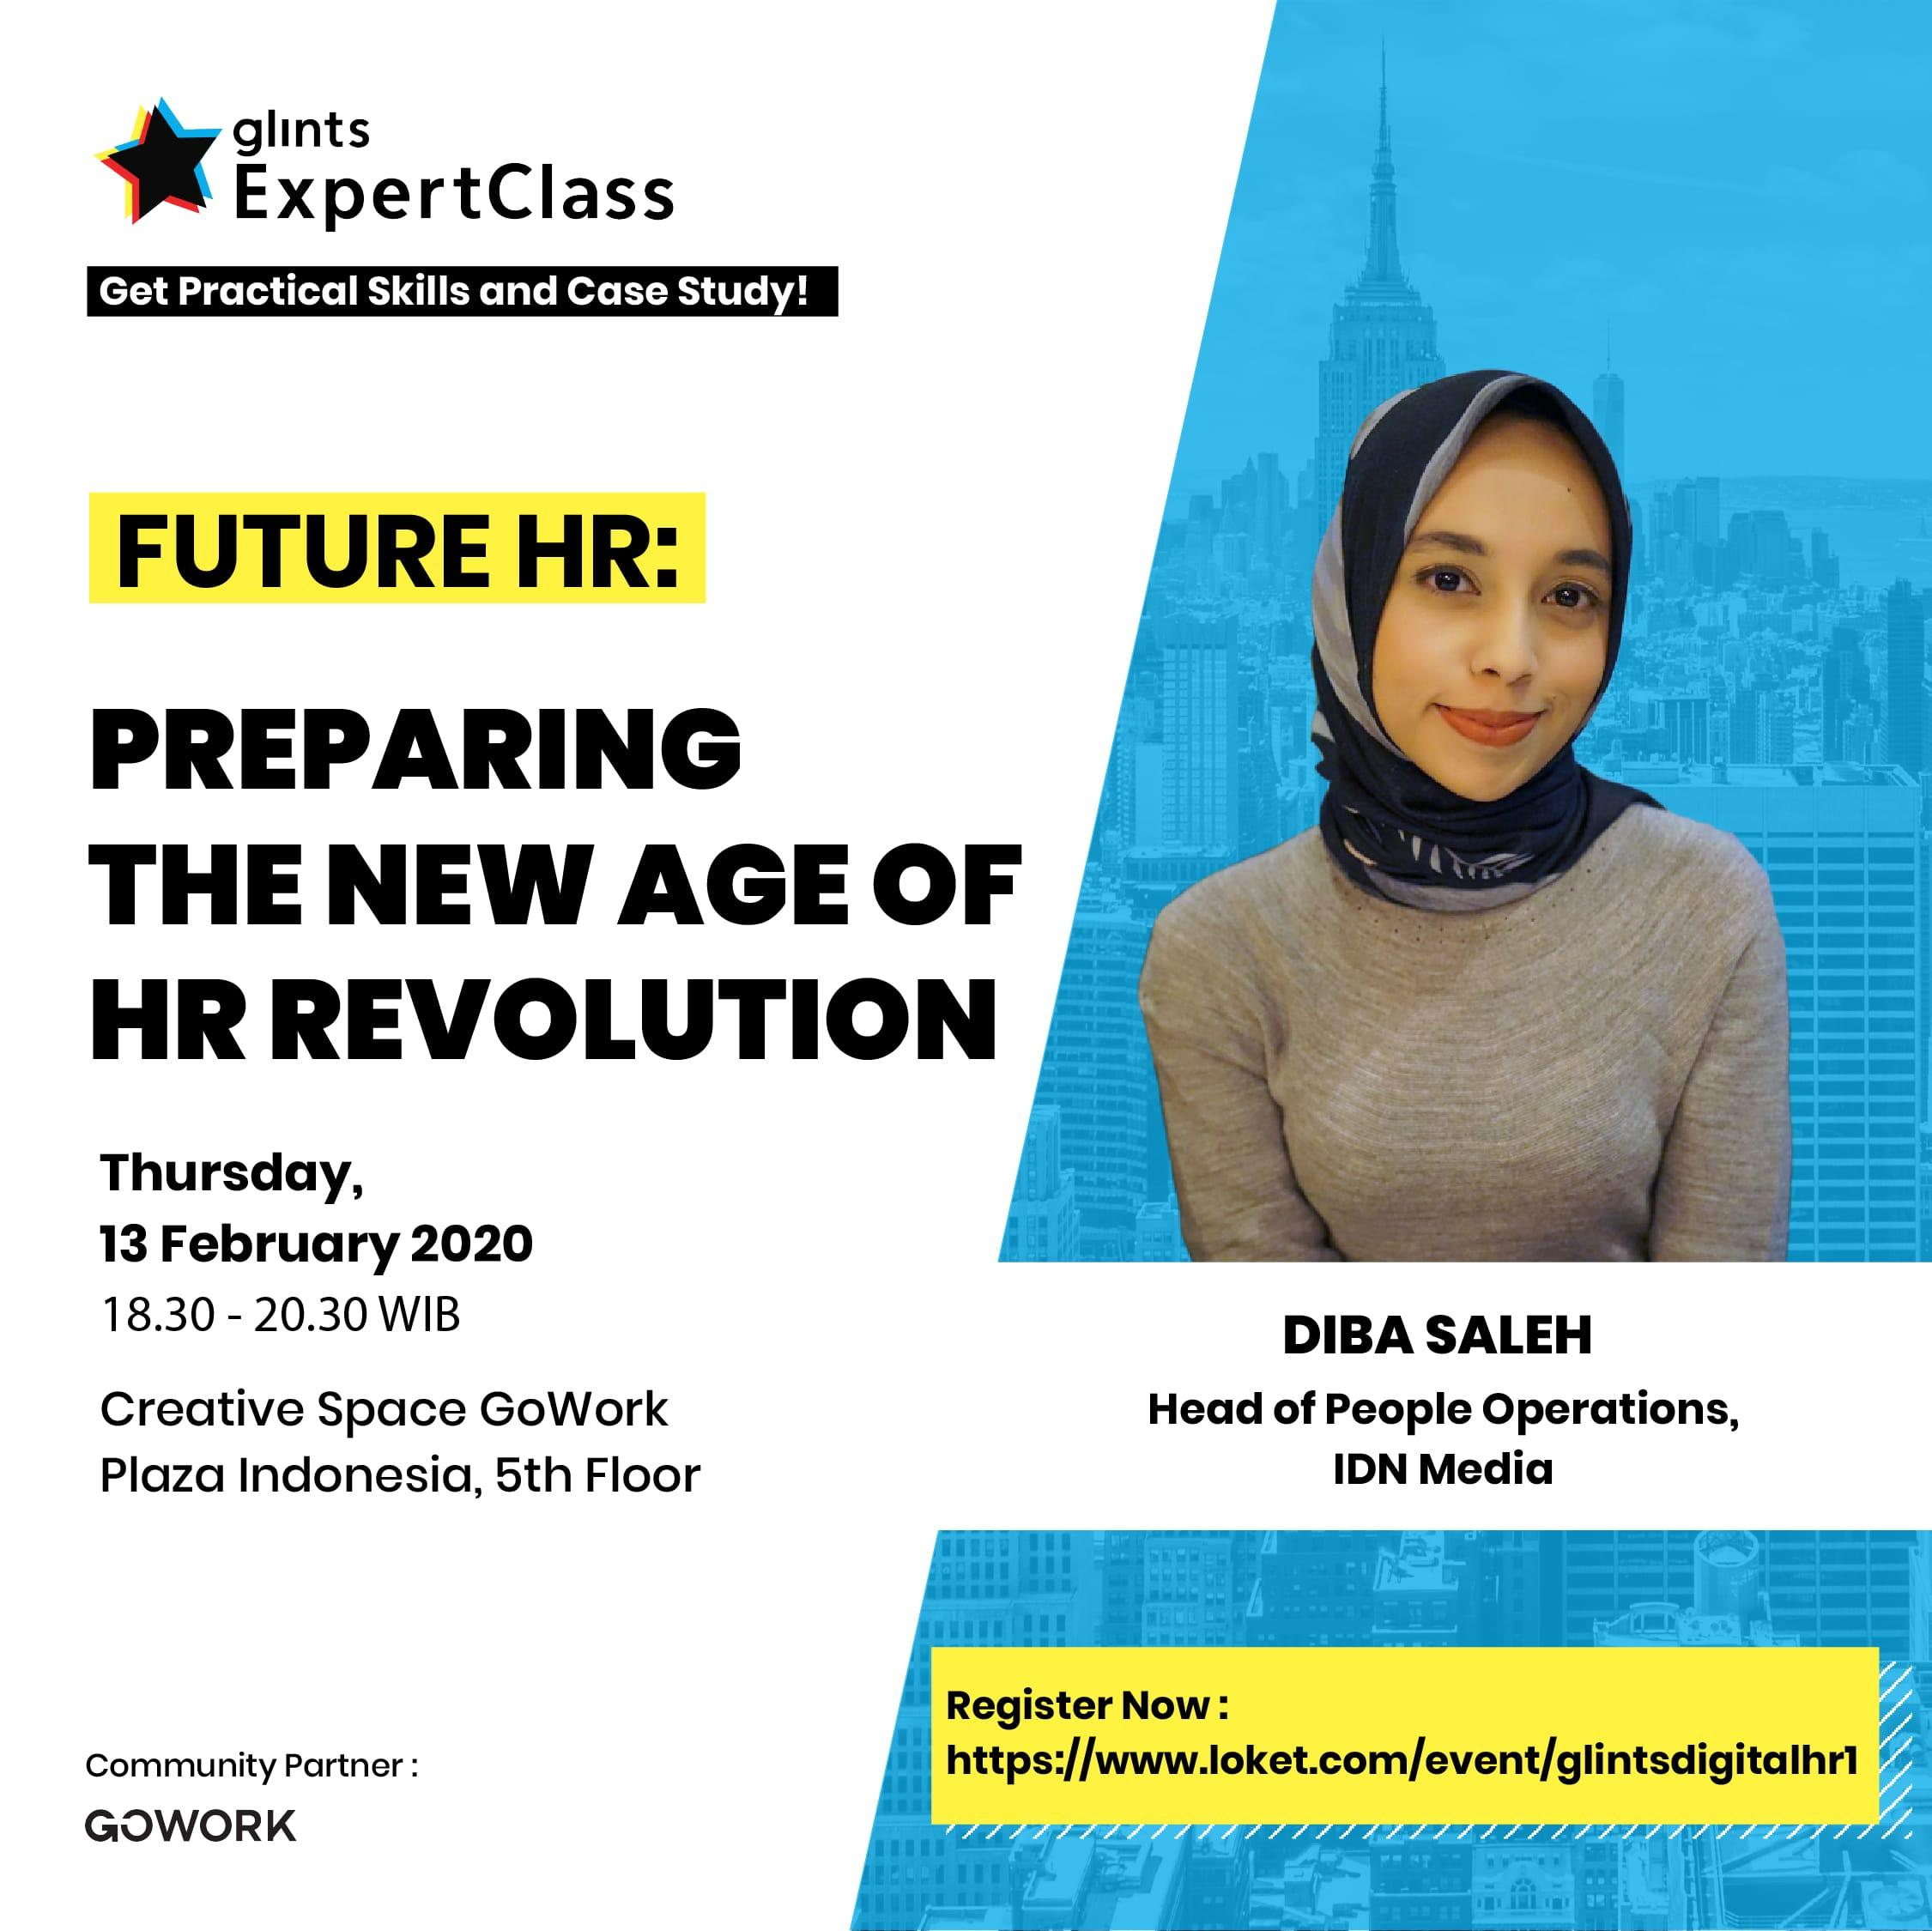 Glints Expert Class - Future HR : Preparing the New Age of HR Revolution